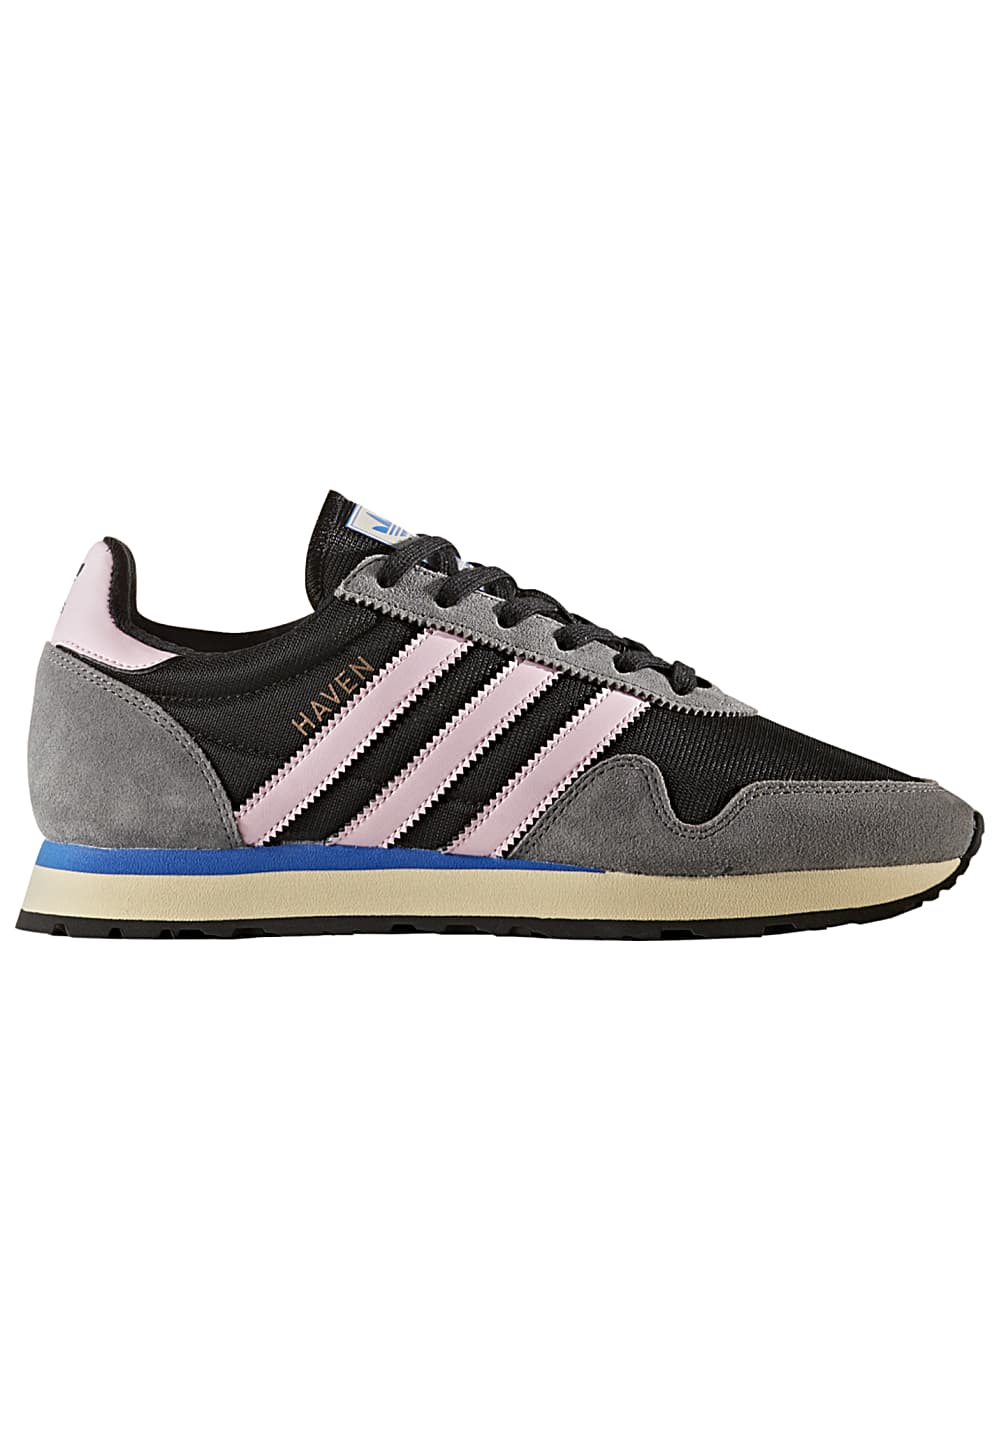 ADIDAS ORIGINALS Haven - Sneakers voor Dames - Zwart